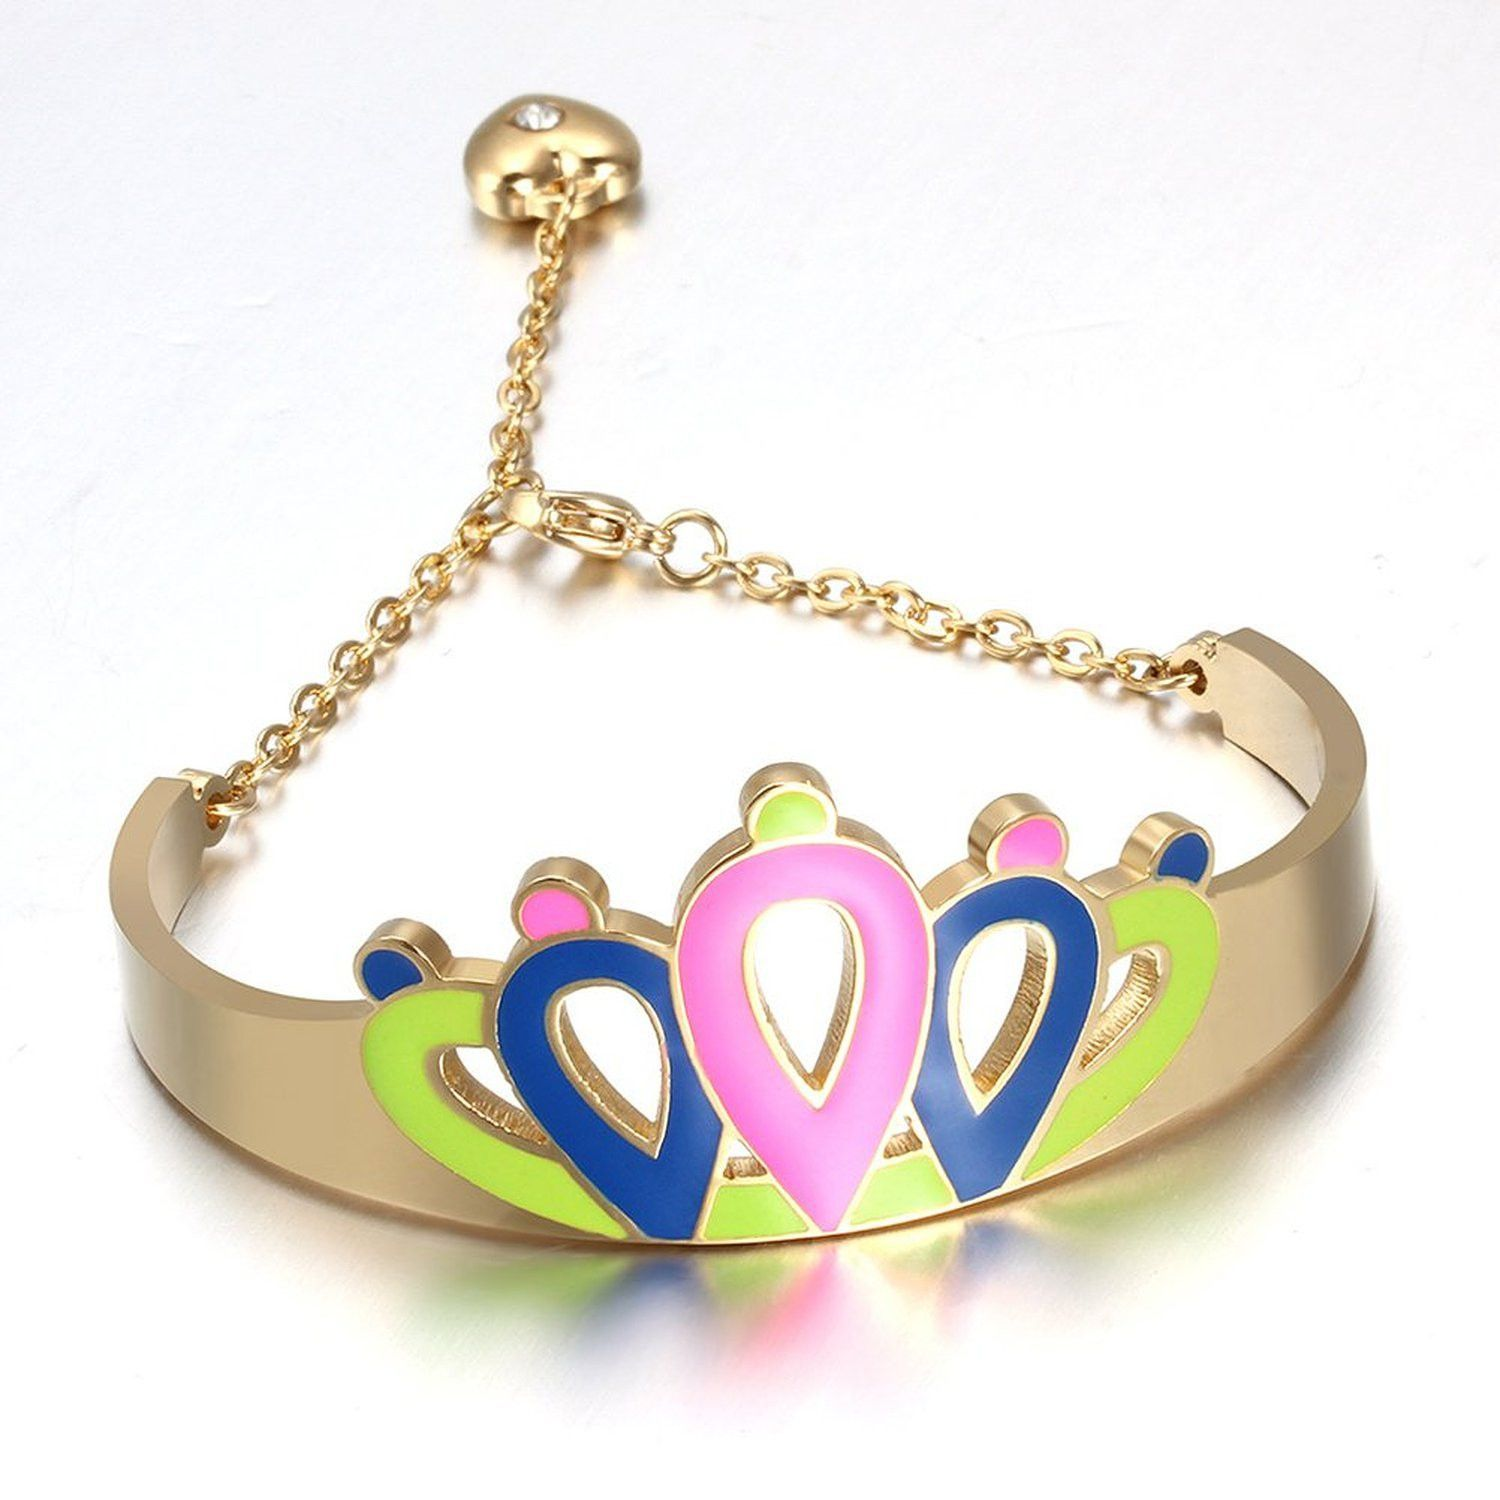 Jewelry girlus stainless steel lovely tri color princess crown link